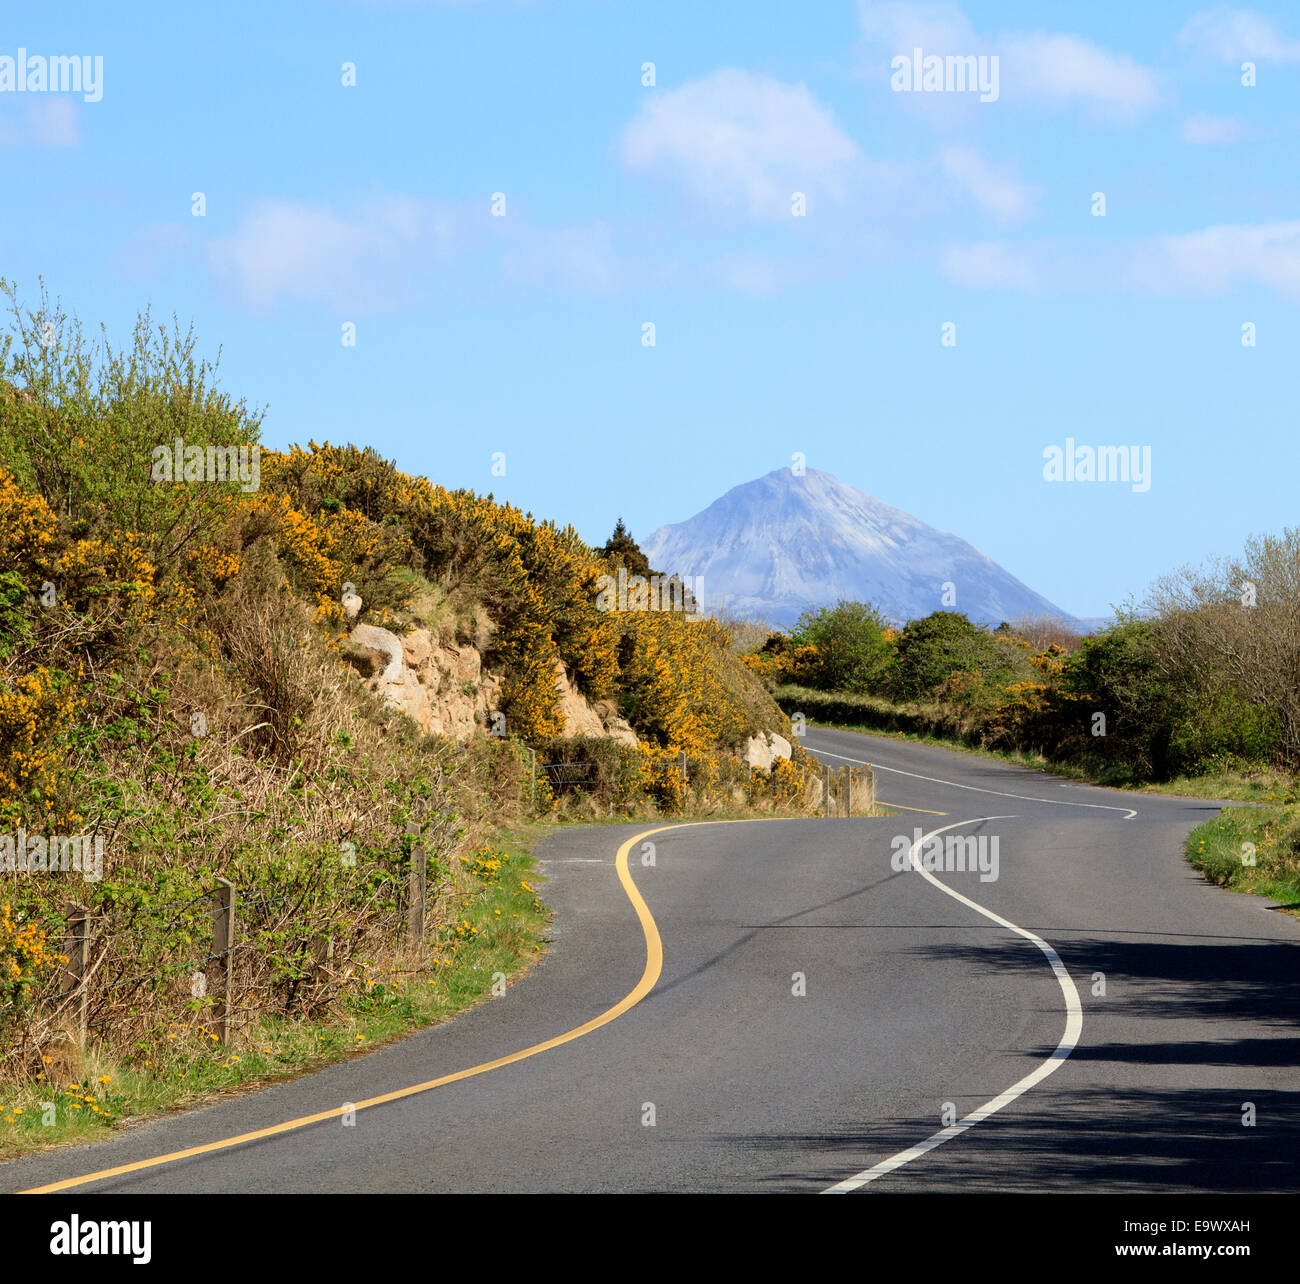 Errigal Mountain, Co. Donegal. A winding road  to Mount Errigal  under a blue summer sky. - Stock Image